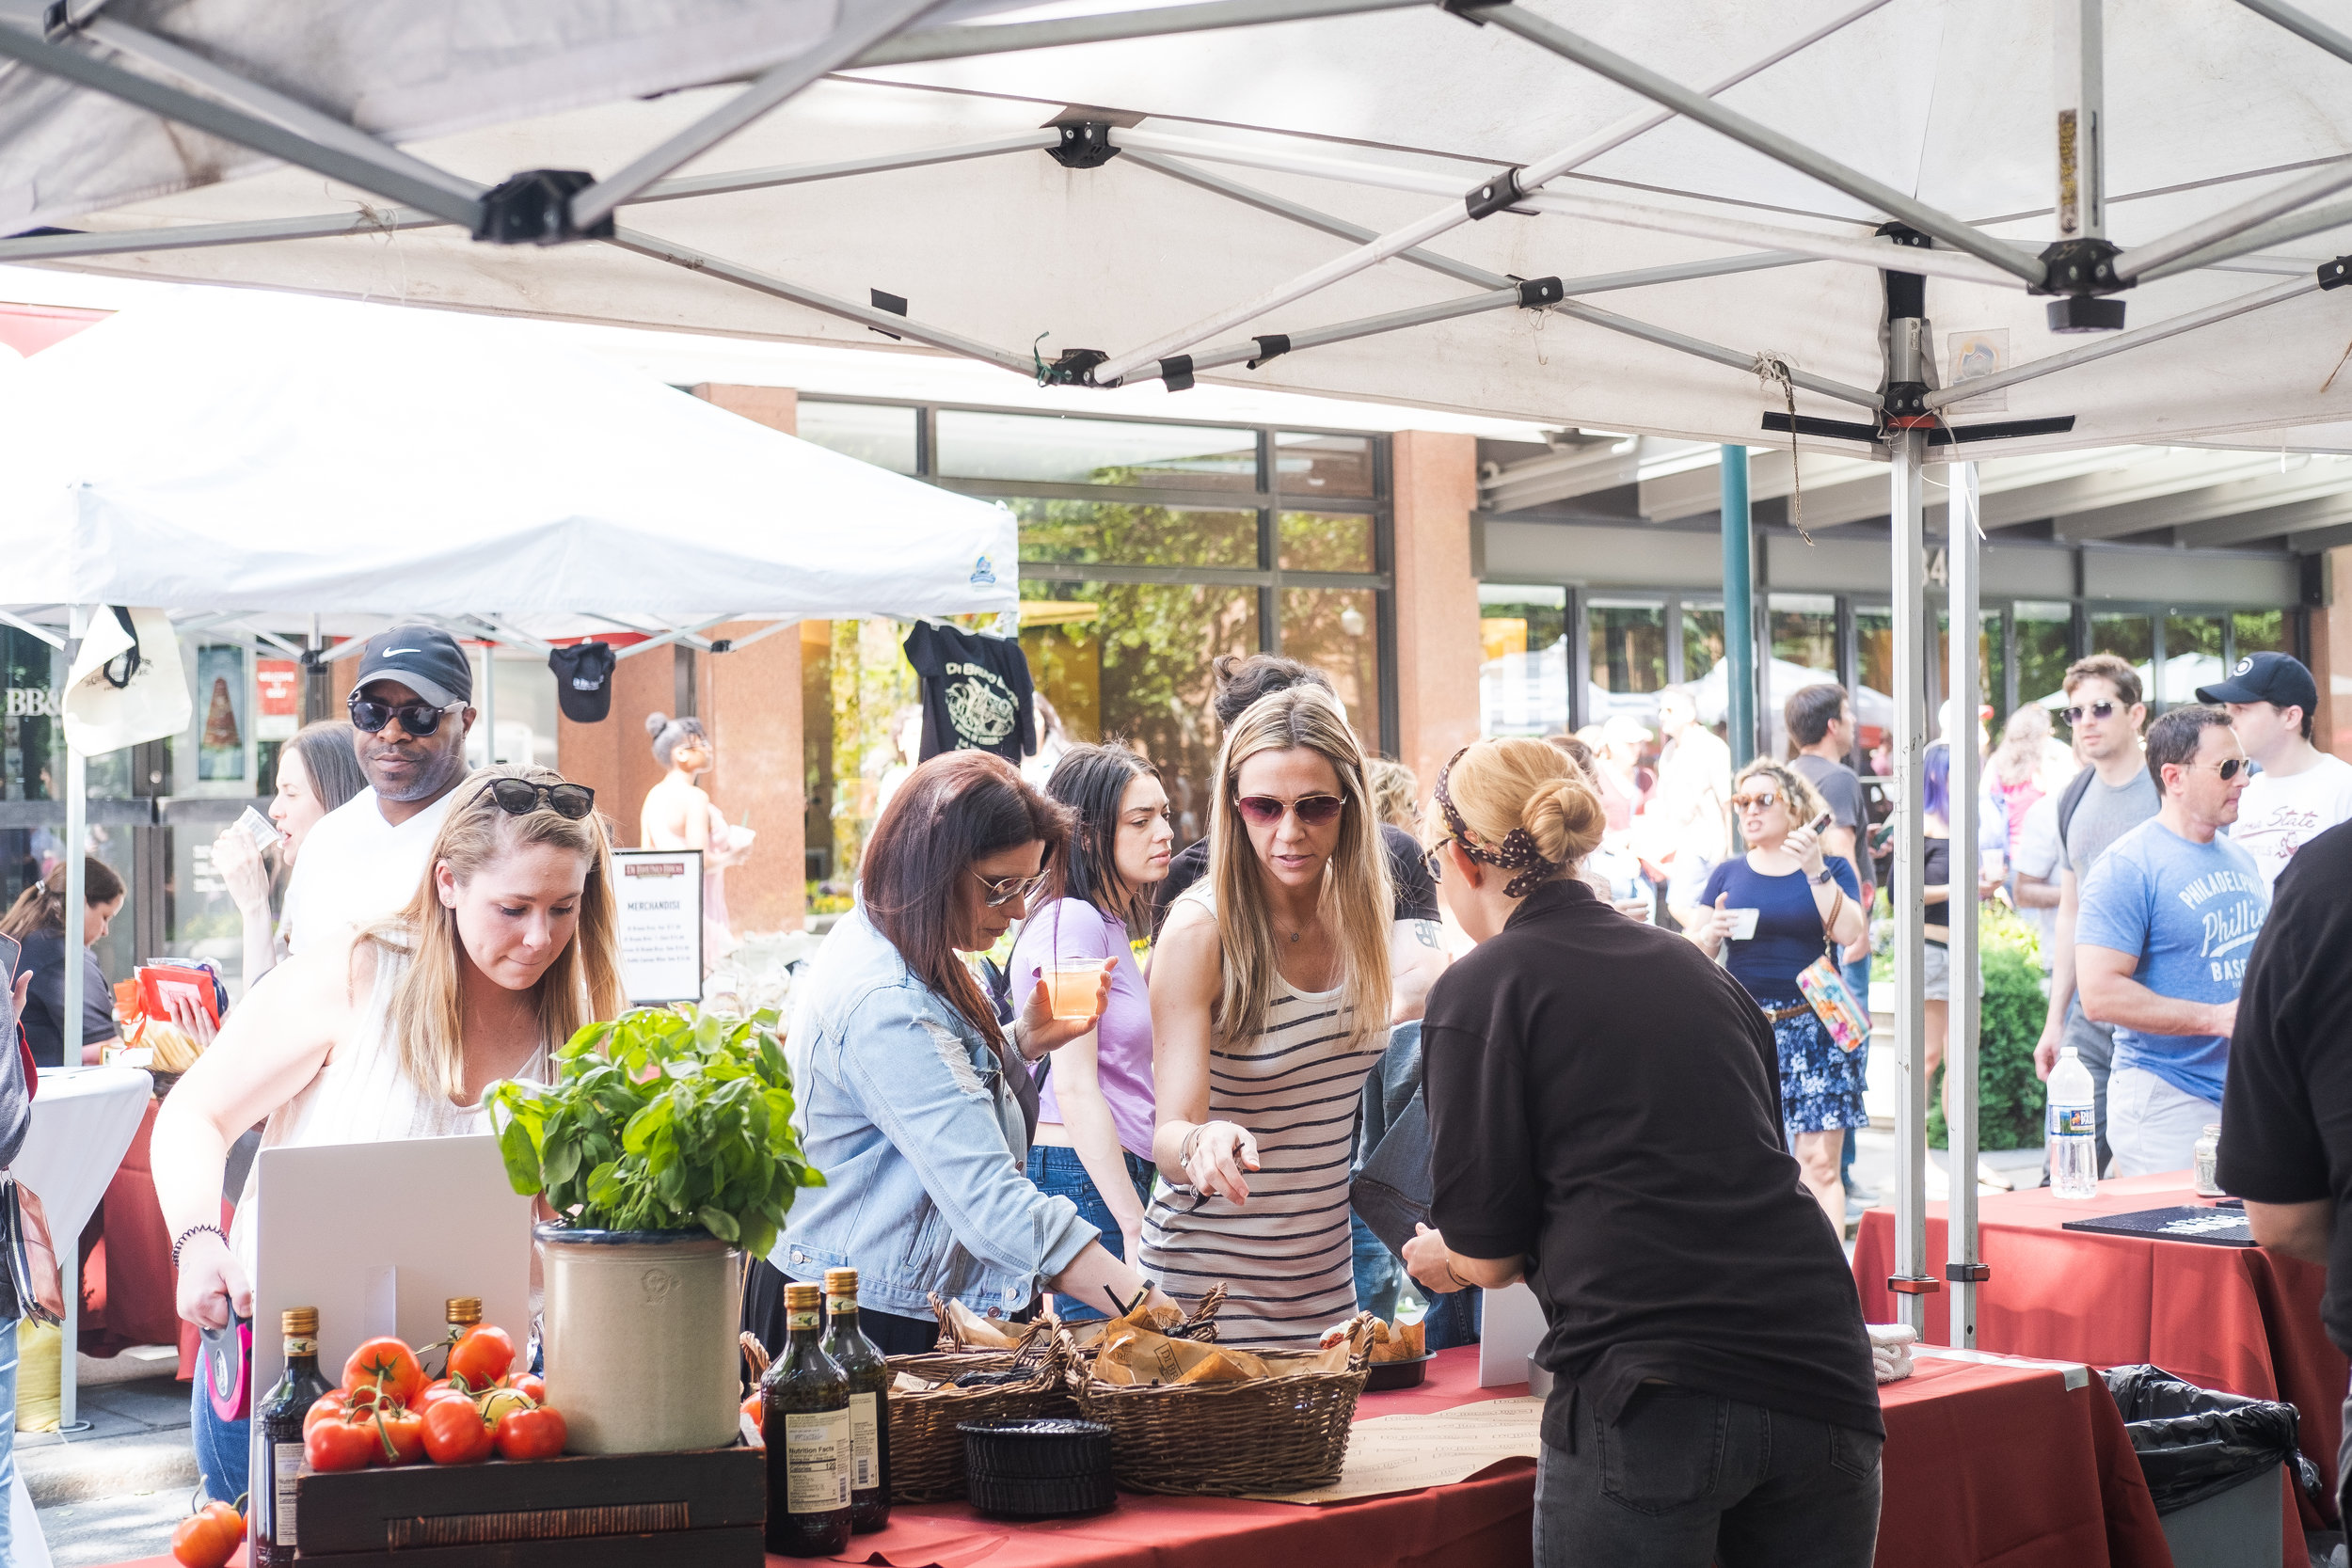 2019_RITTENHOUSE ROW FEST_EVENTS_THE PHILLY CHECKLIST-4.jpg